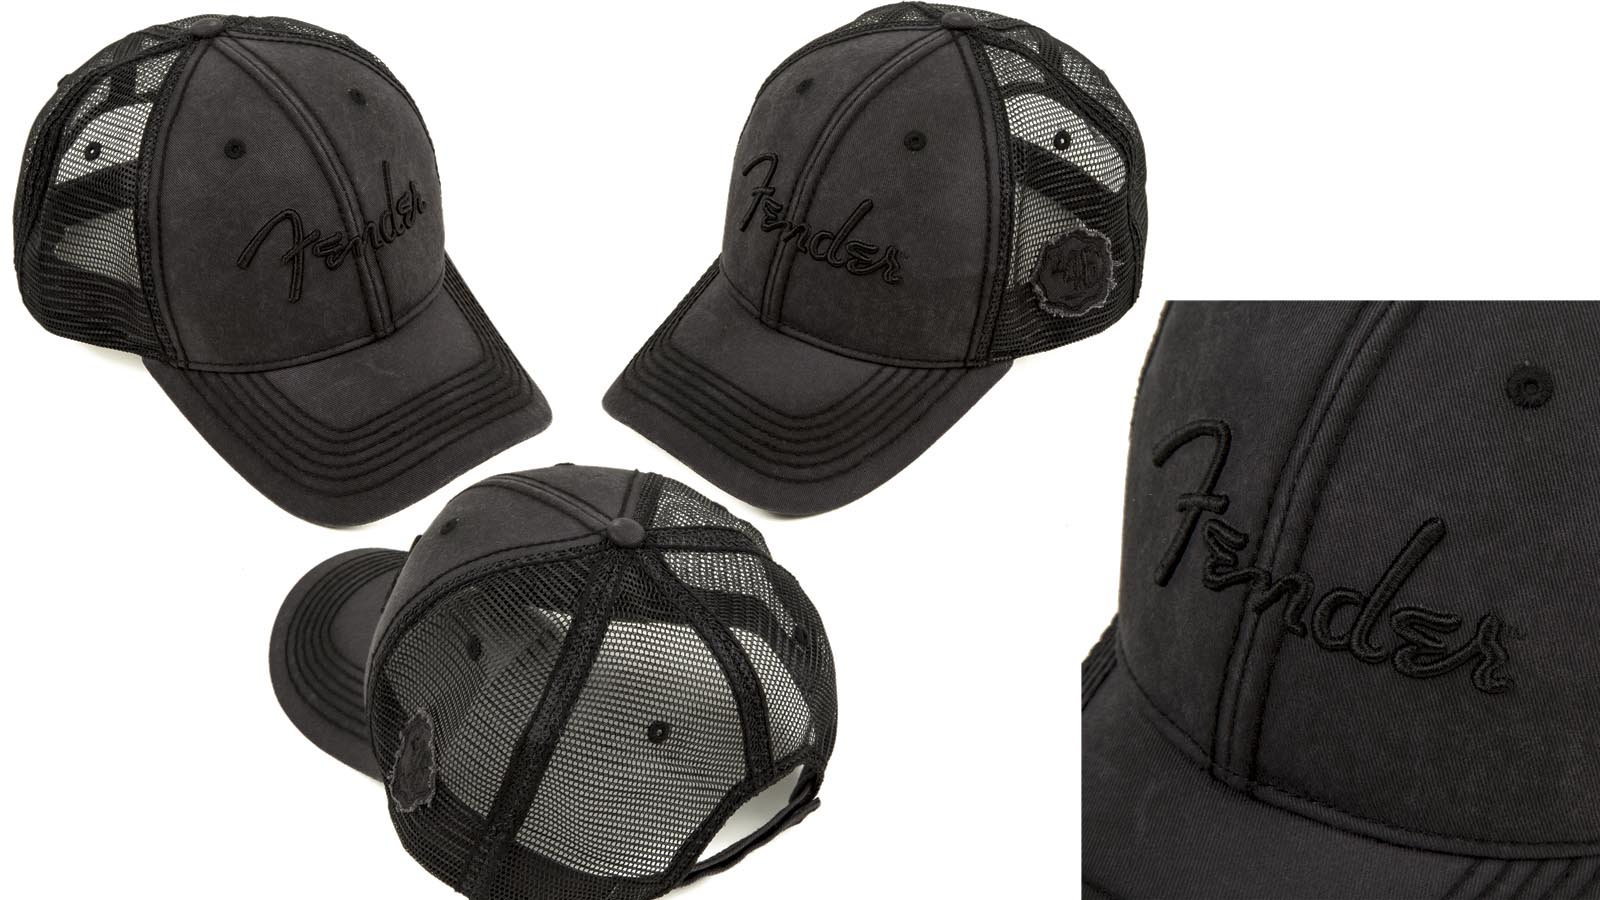 Fender Blackout Trucker Hat One Size Fits Most